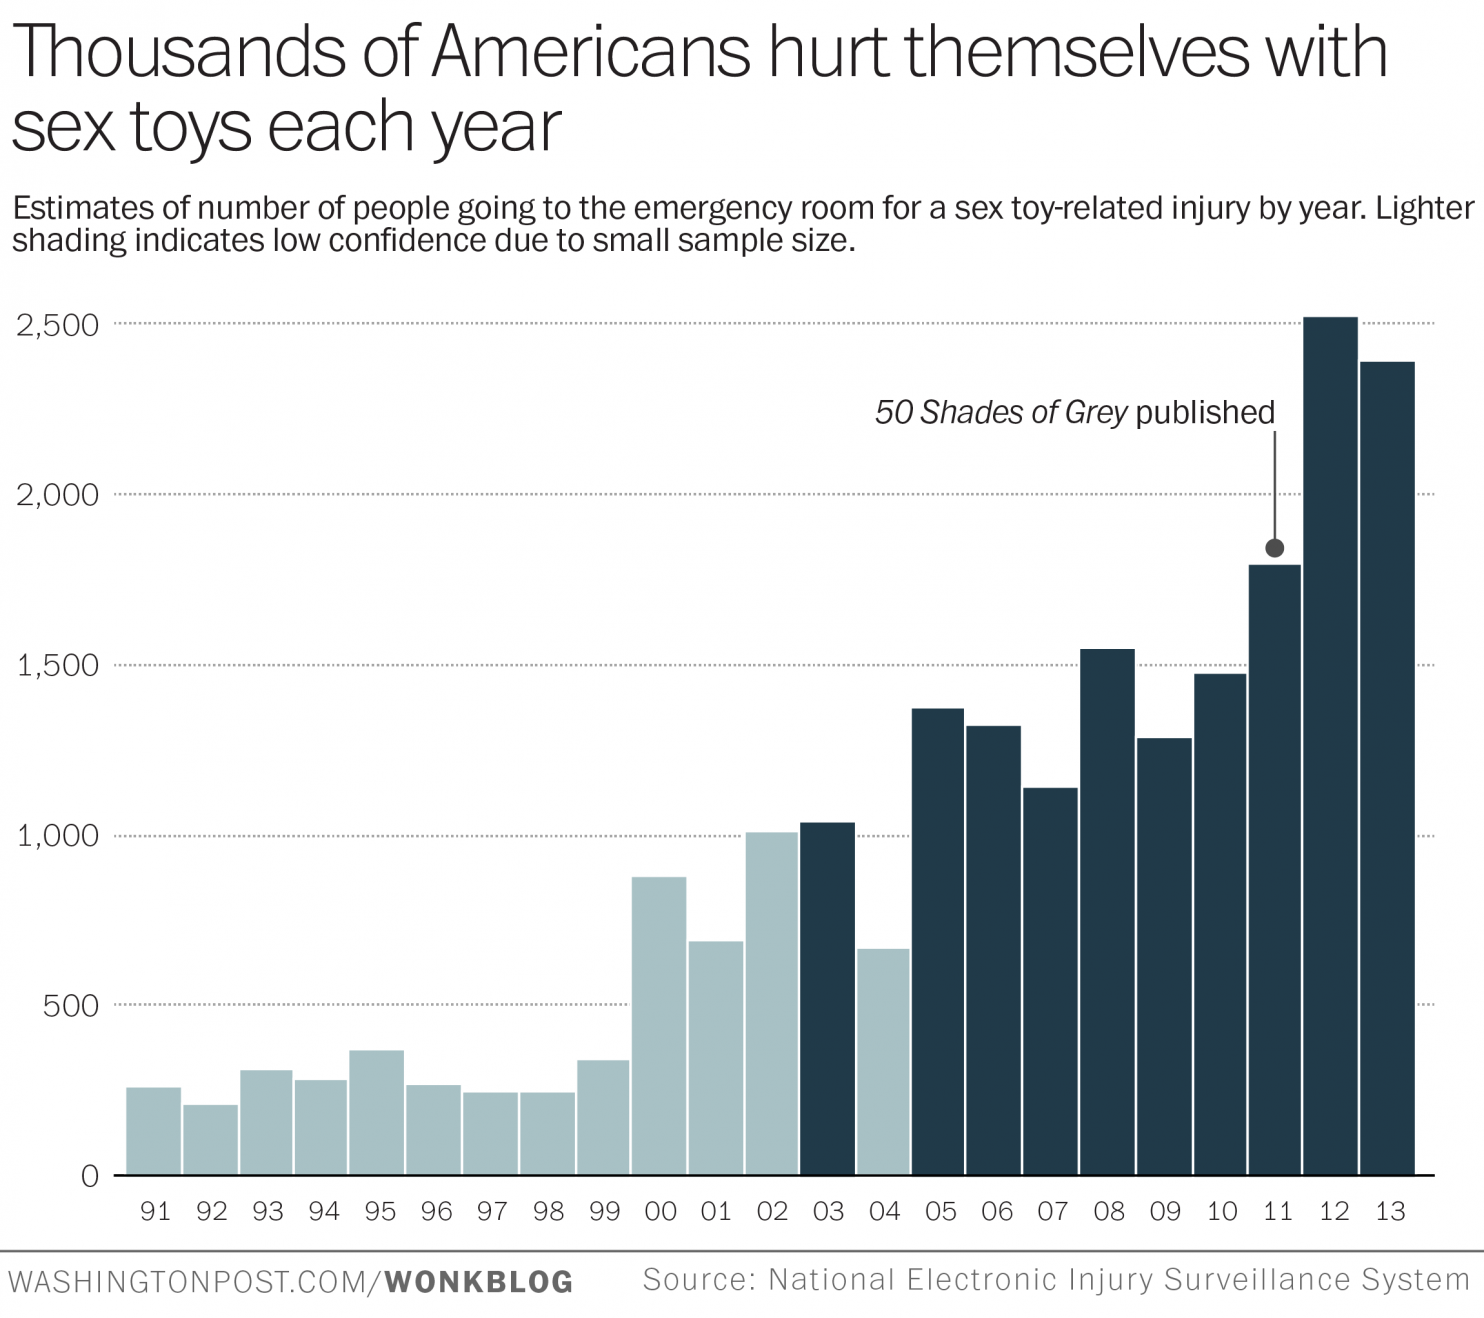 shades of grey to blame for spike in sex toy related injuries washington post sourced this neiss graph